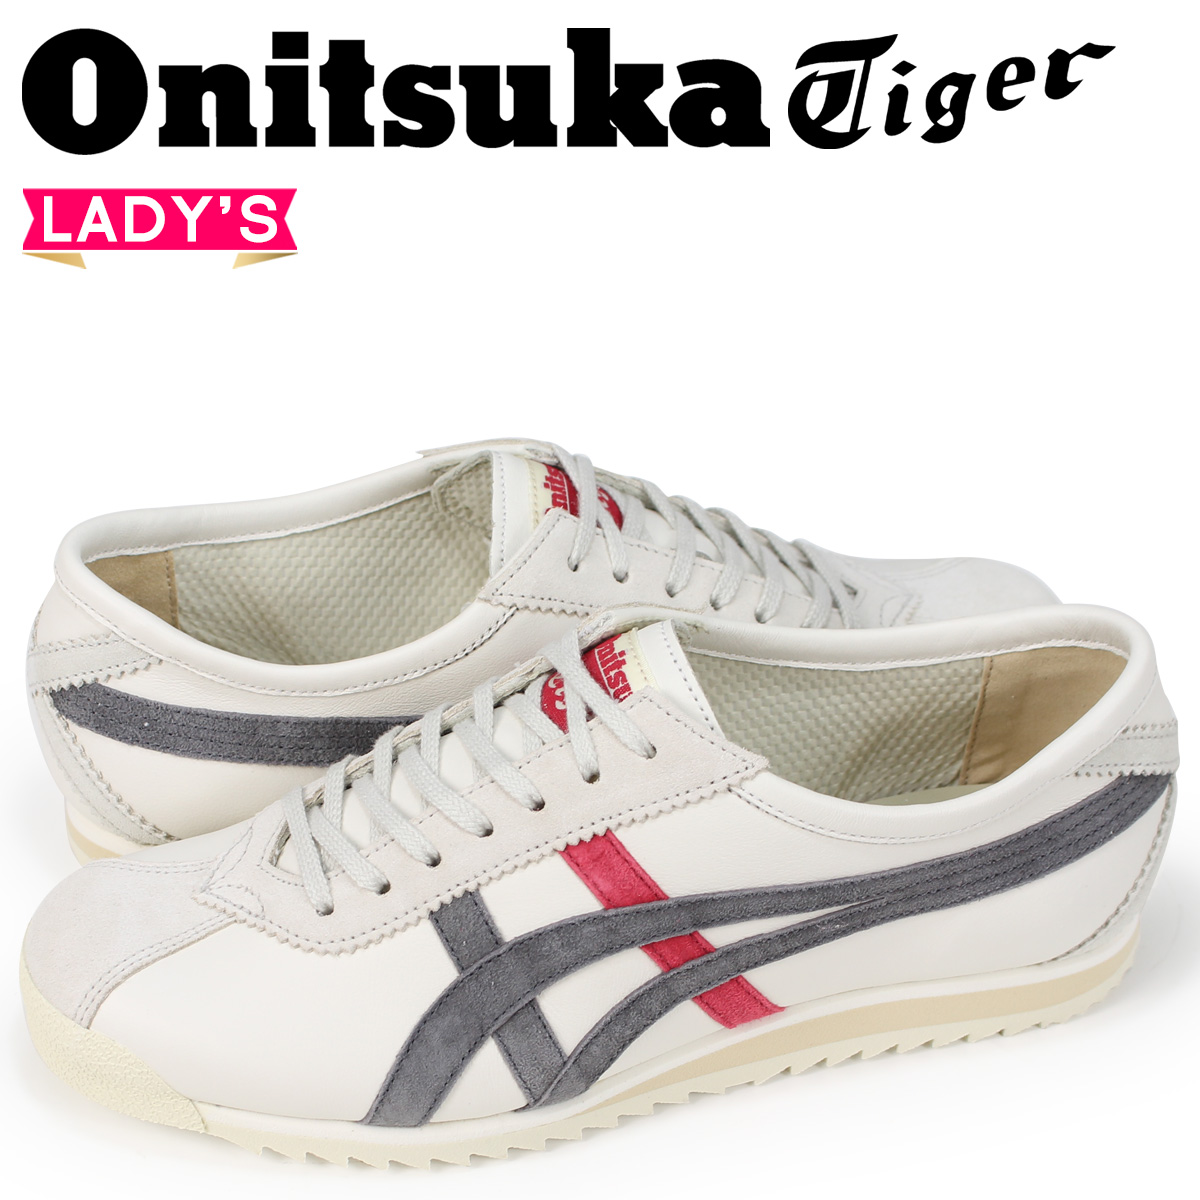 SneaK Online Shop | Rakuten Global Market: Onitsuka tiger limbers 66 Onitsuka Tiger LIMBER 66 PRESTIGE Lady's sneakers OT6000-201 white [load planned Shinnyu load in reservation product 8/2 containing]